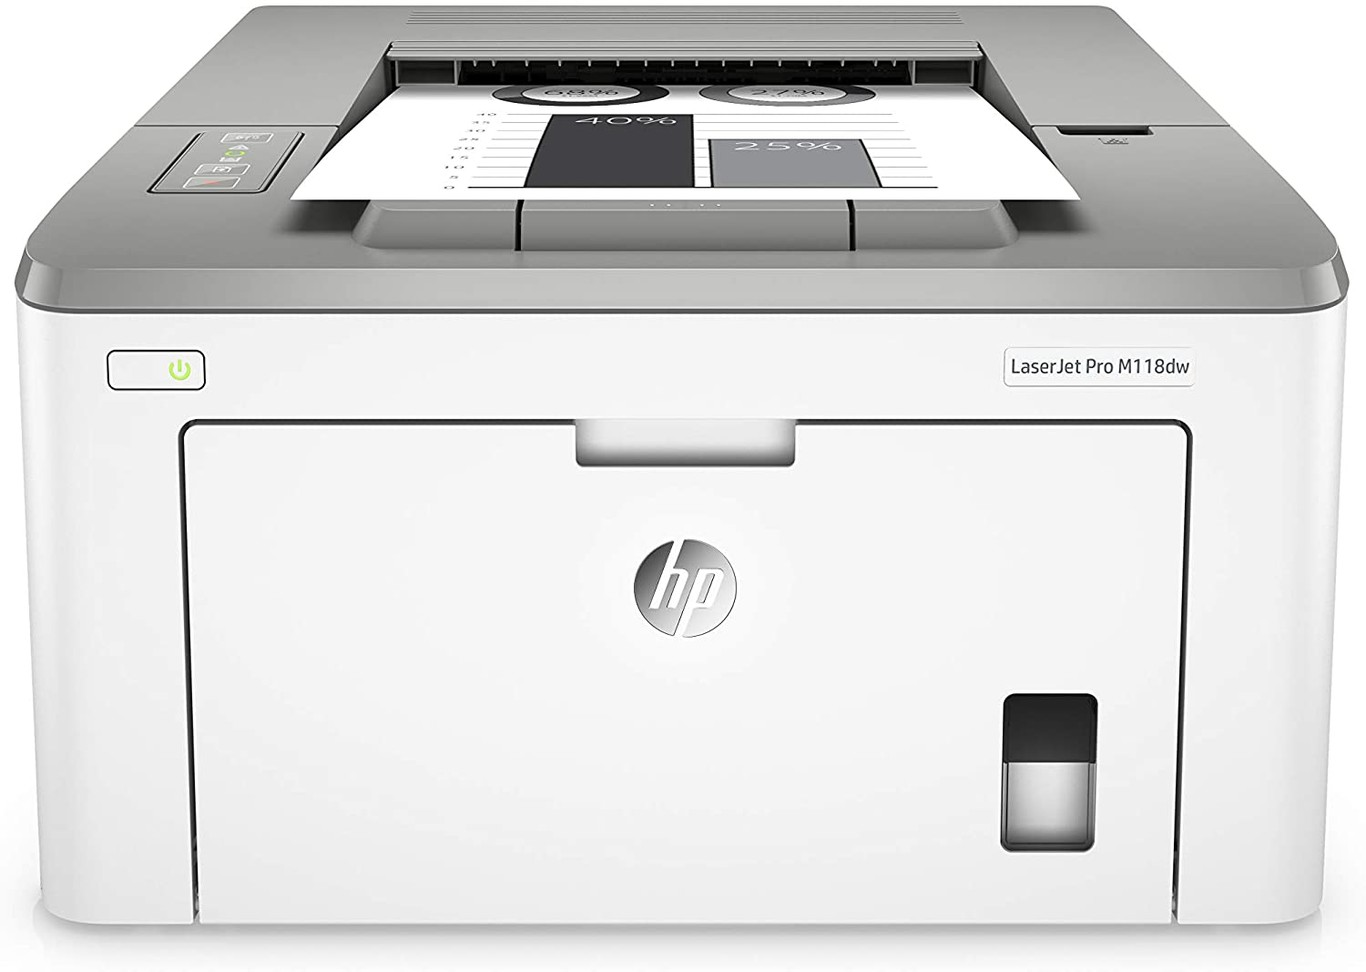 23 Best Printers (2020): Buying Guide With Tips 13